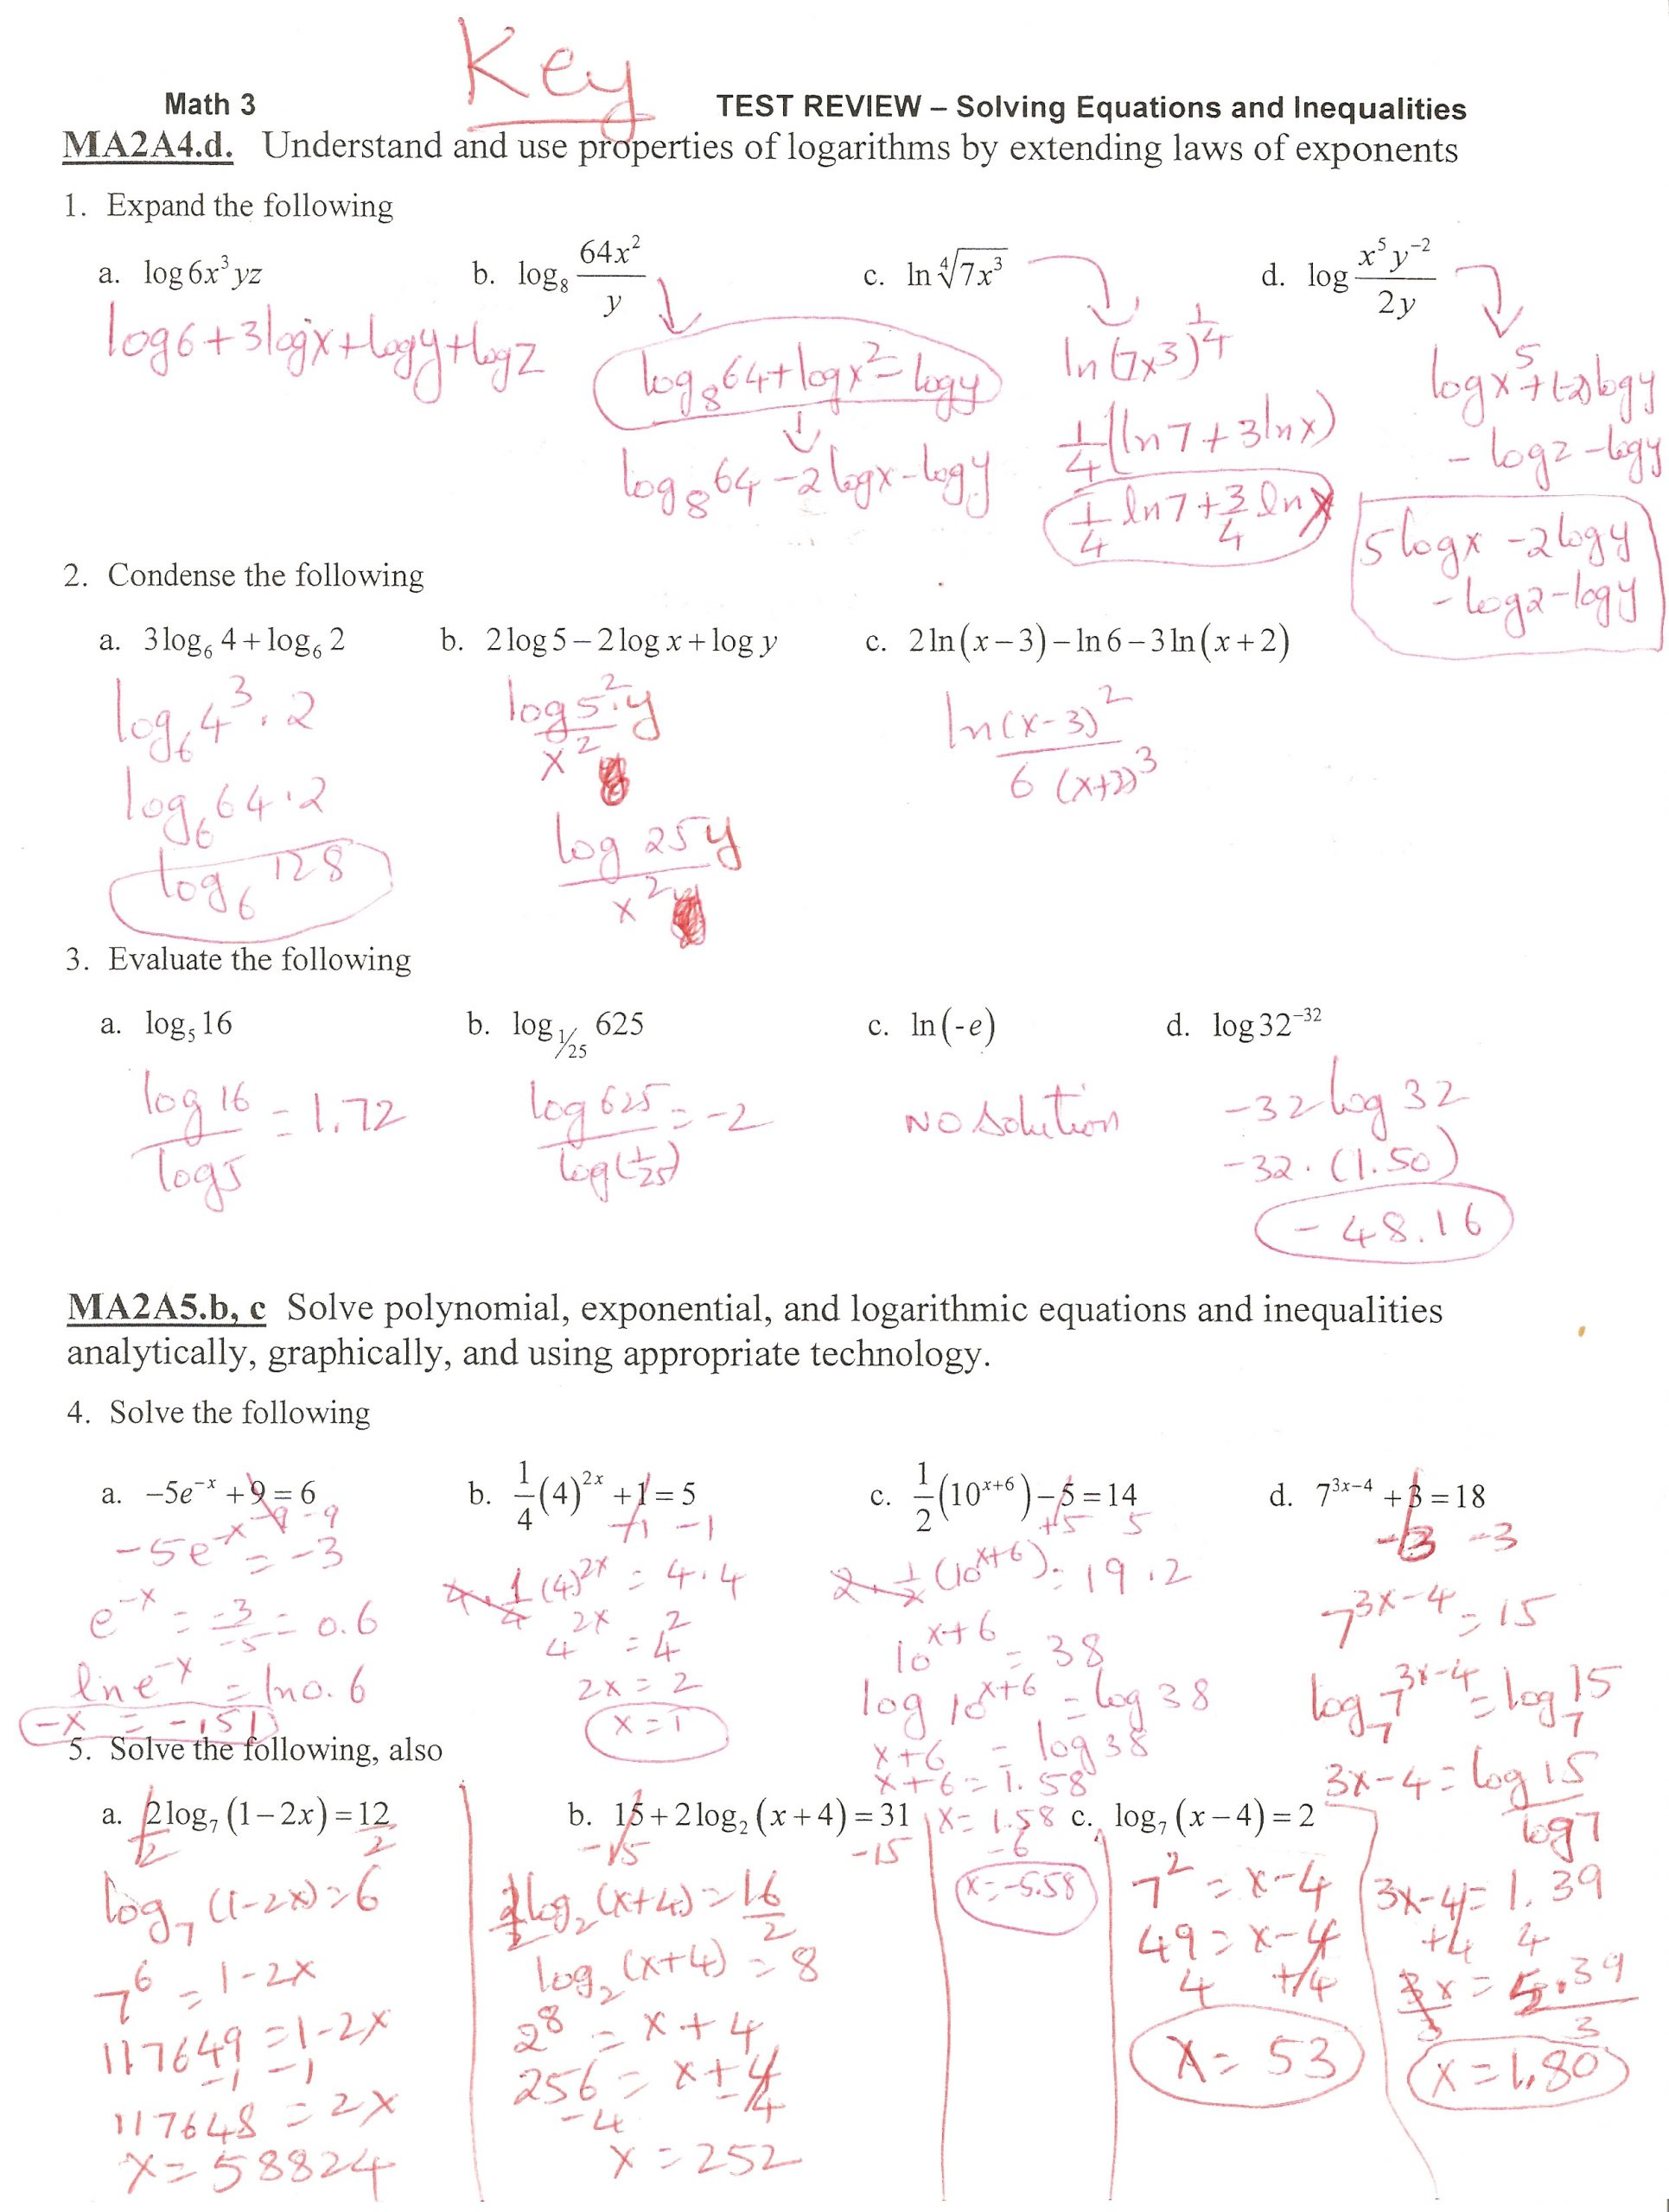 Solving Logarithmic Equations Worksheet 33 solving Exponential Equations by Rewriting the Base